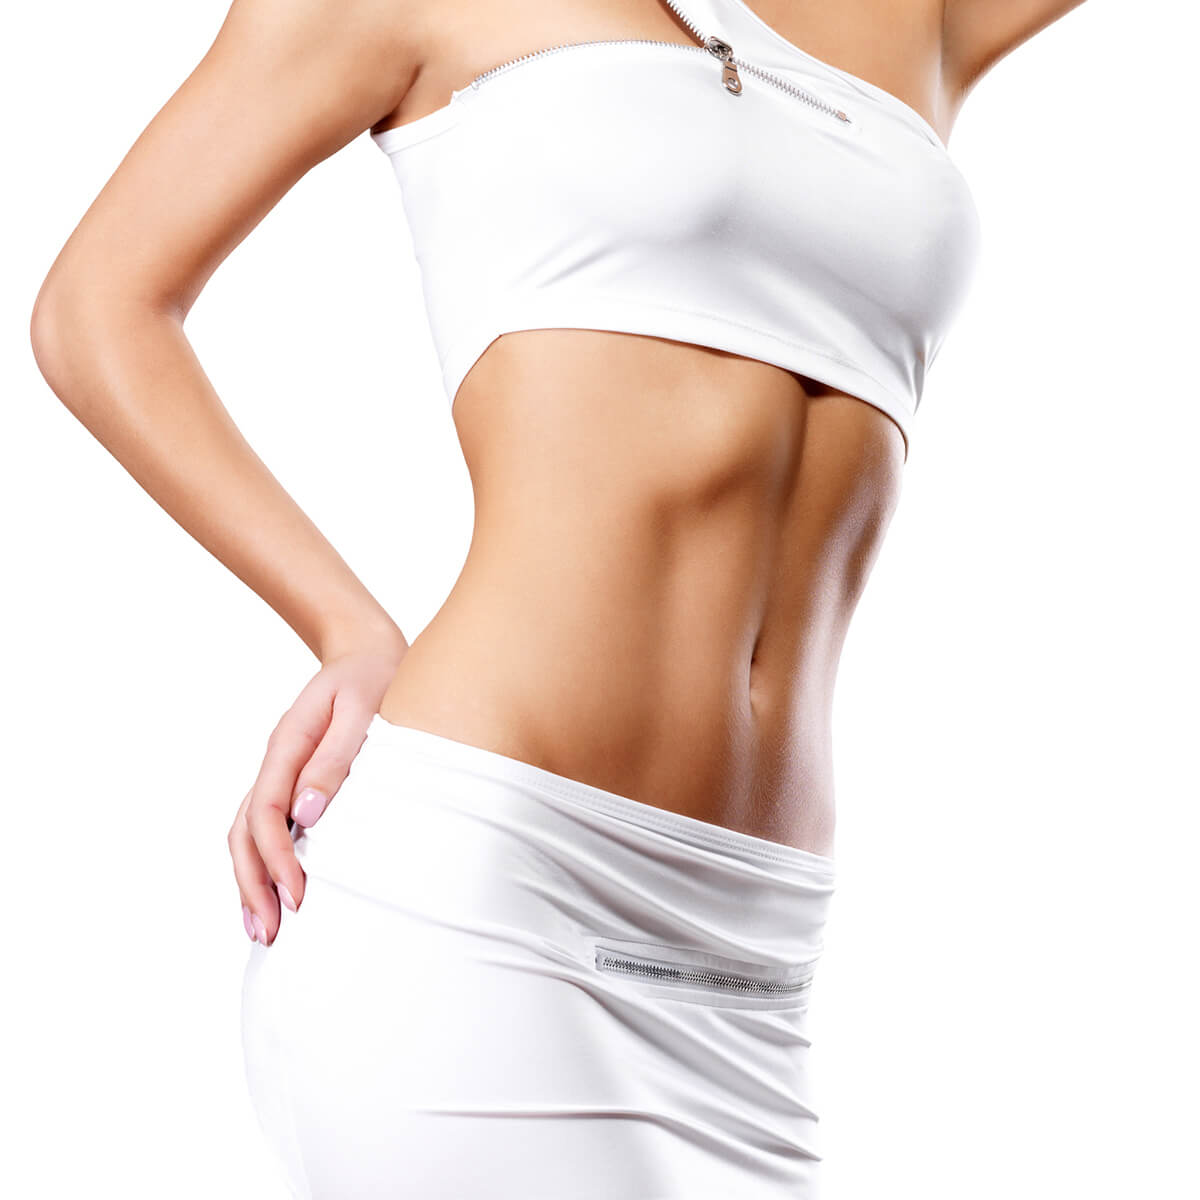 Laser Skin Tightening at The Skin and Laser Treatment Institute Near Me Walnut Creek CA Area